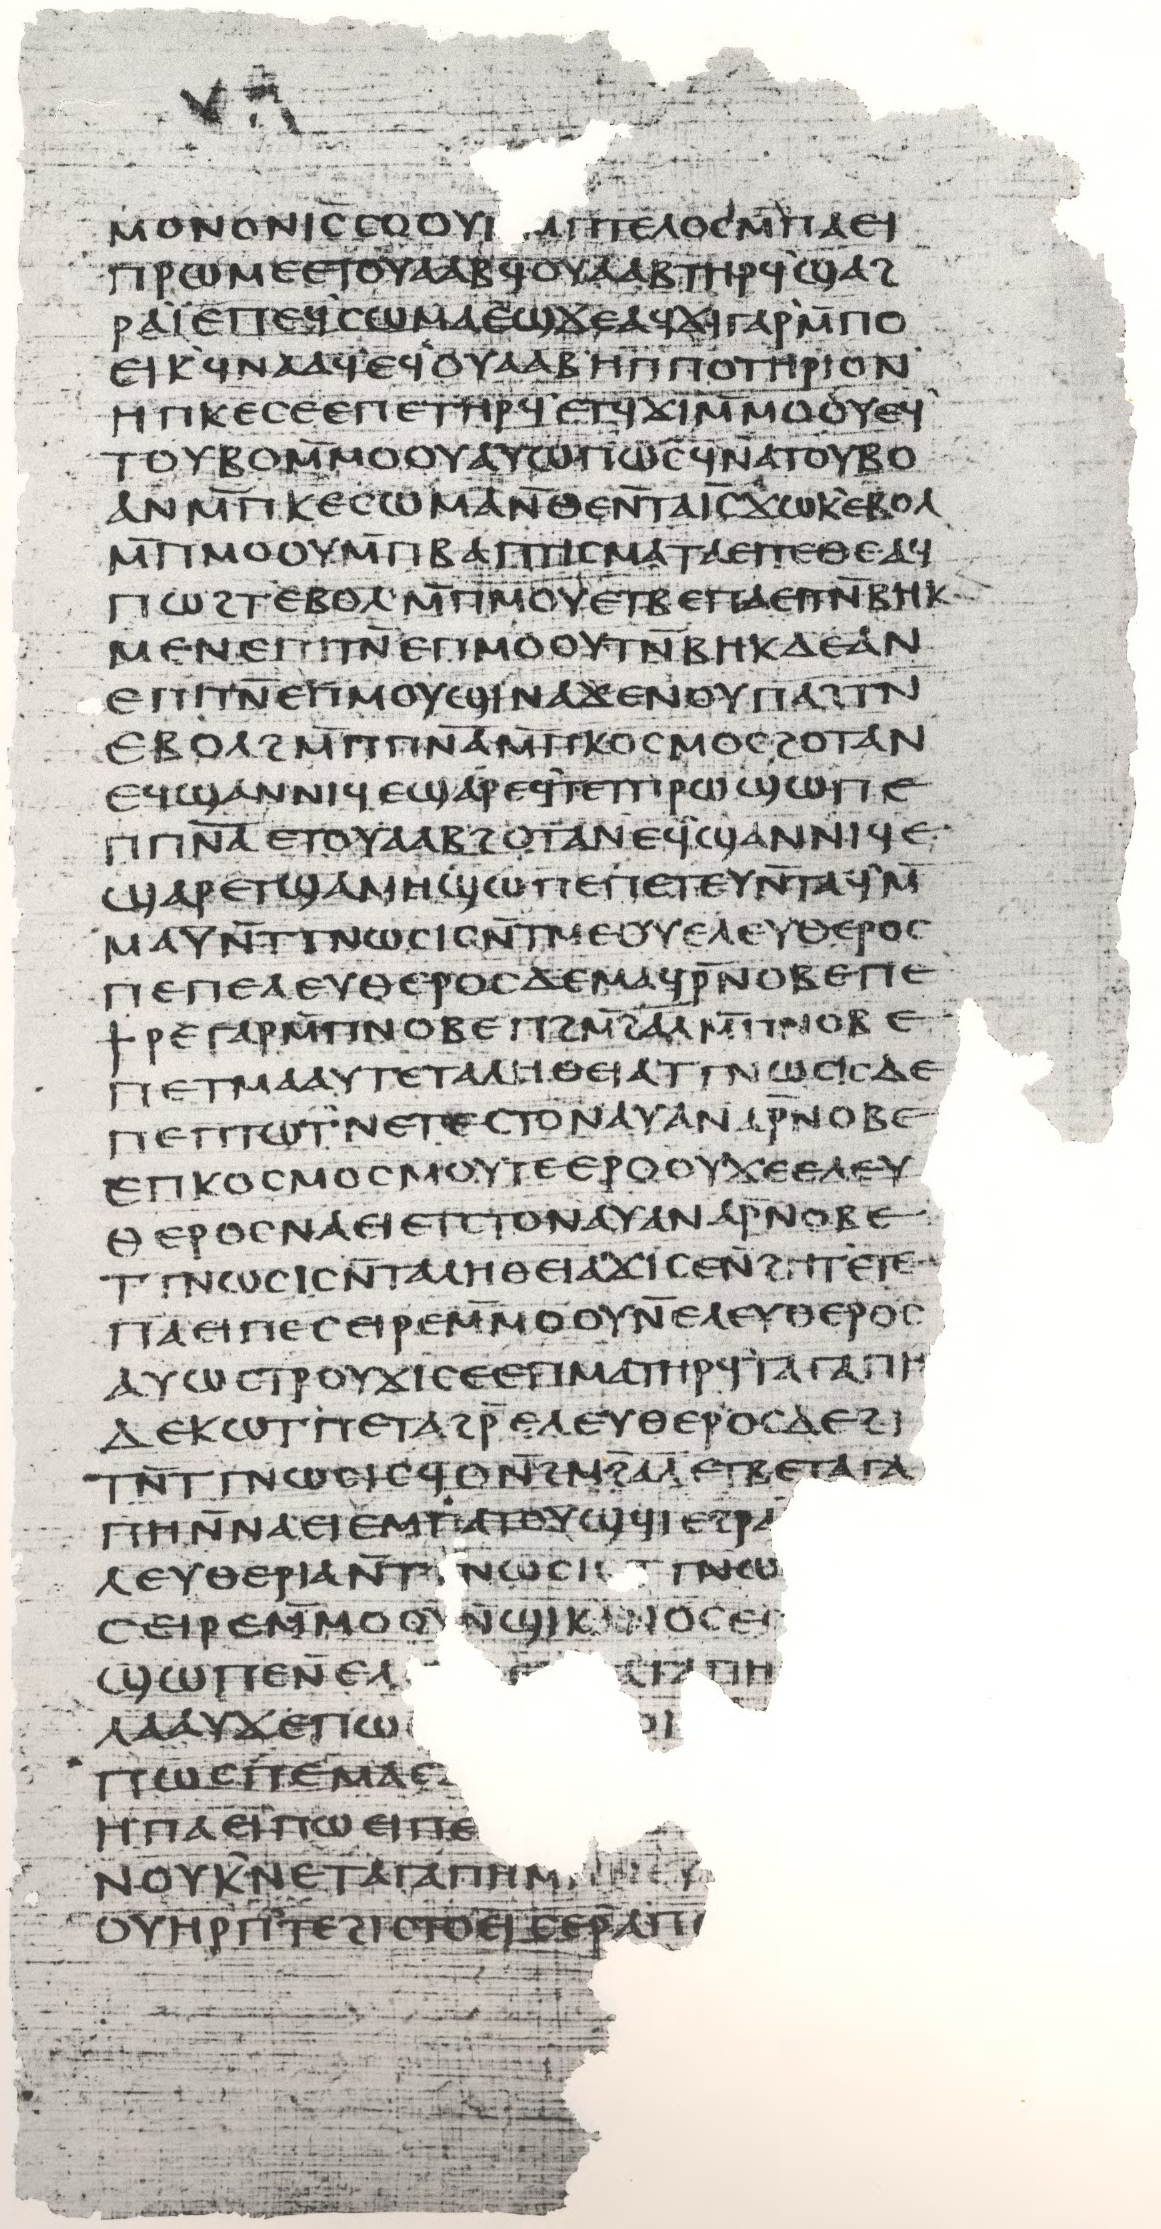 Gospel_of_Philip_facsimile_Page_77.jpg